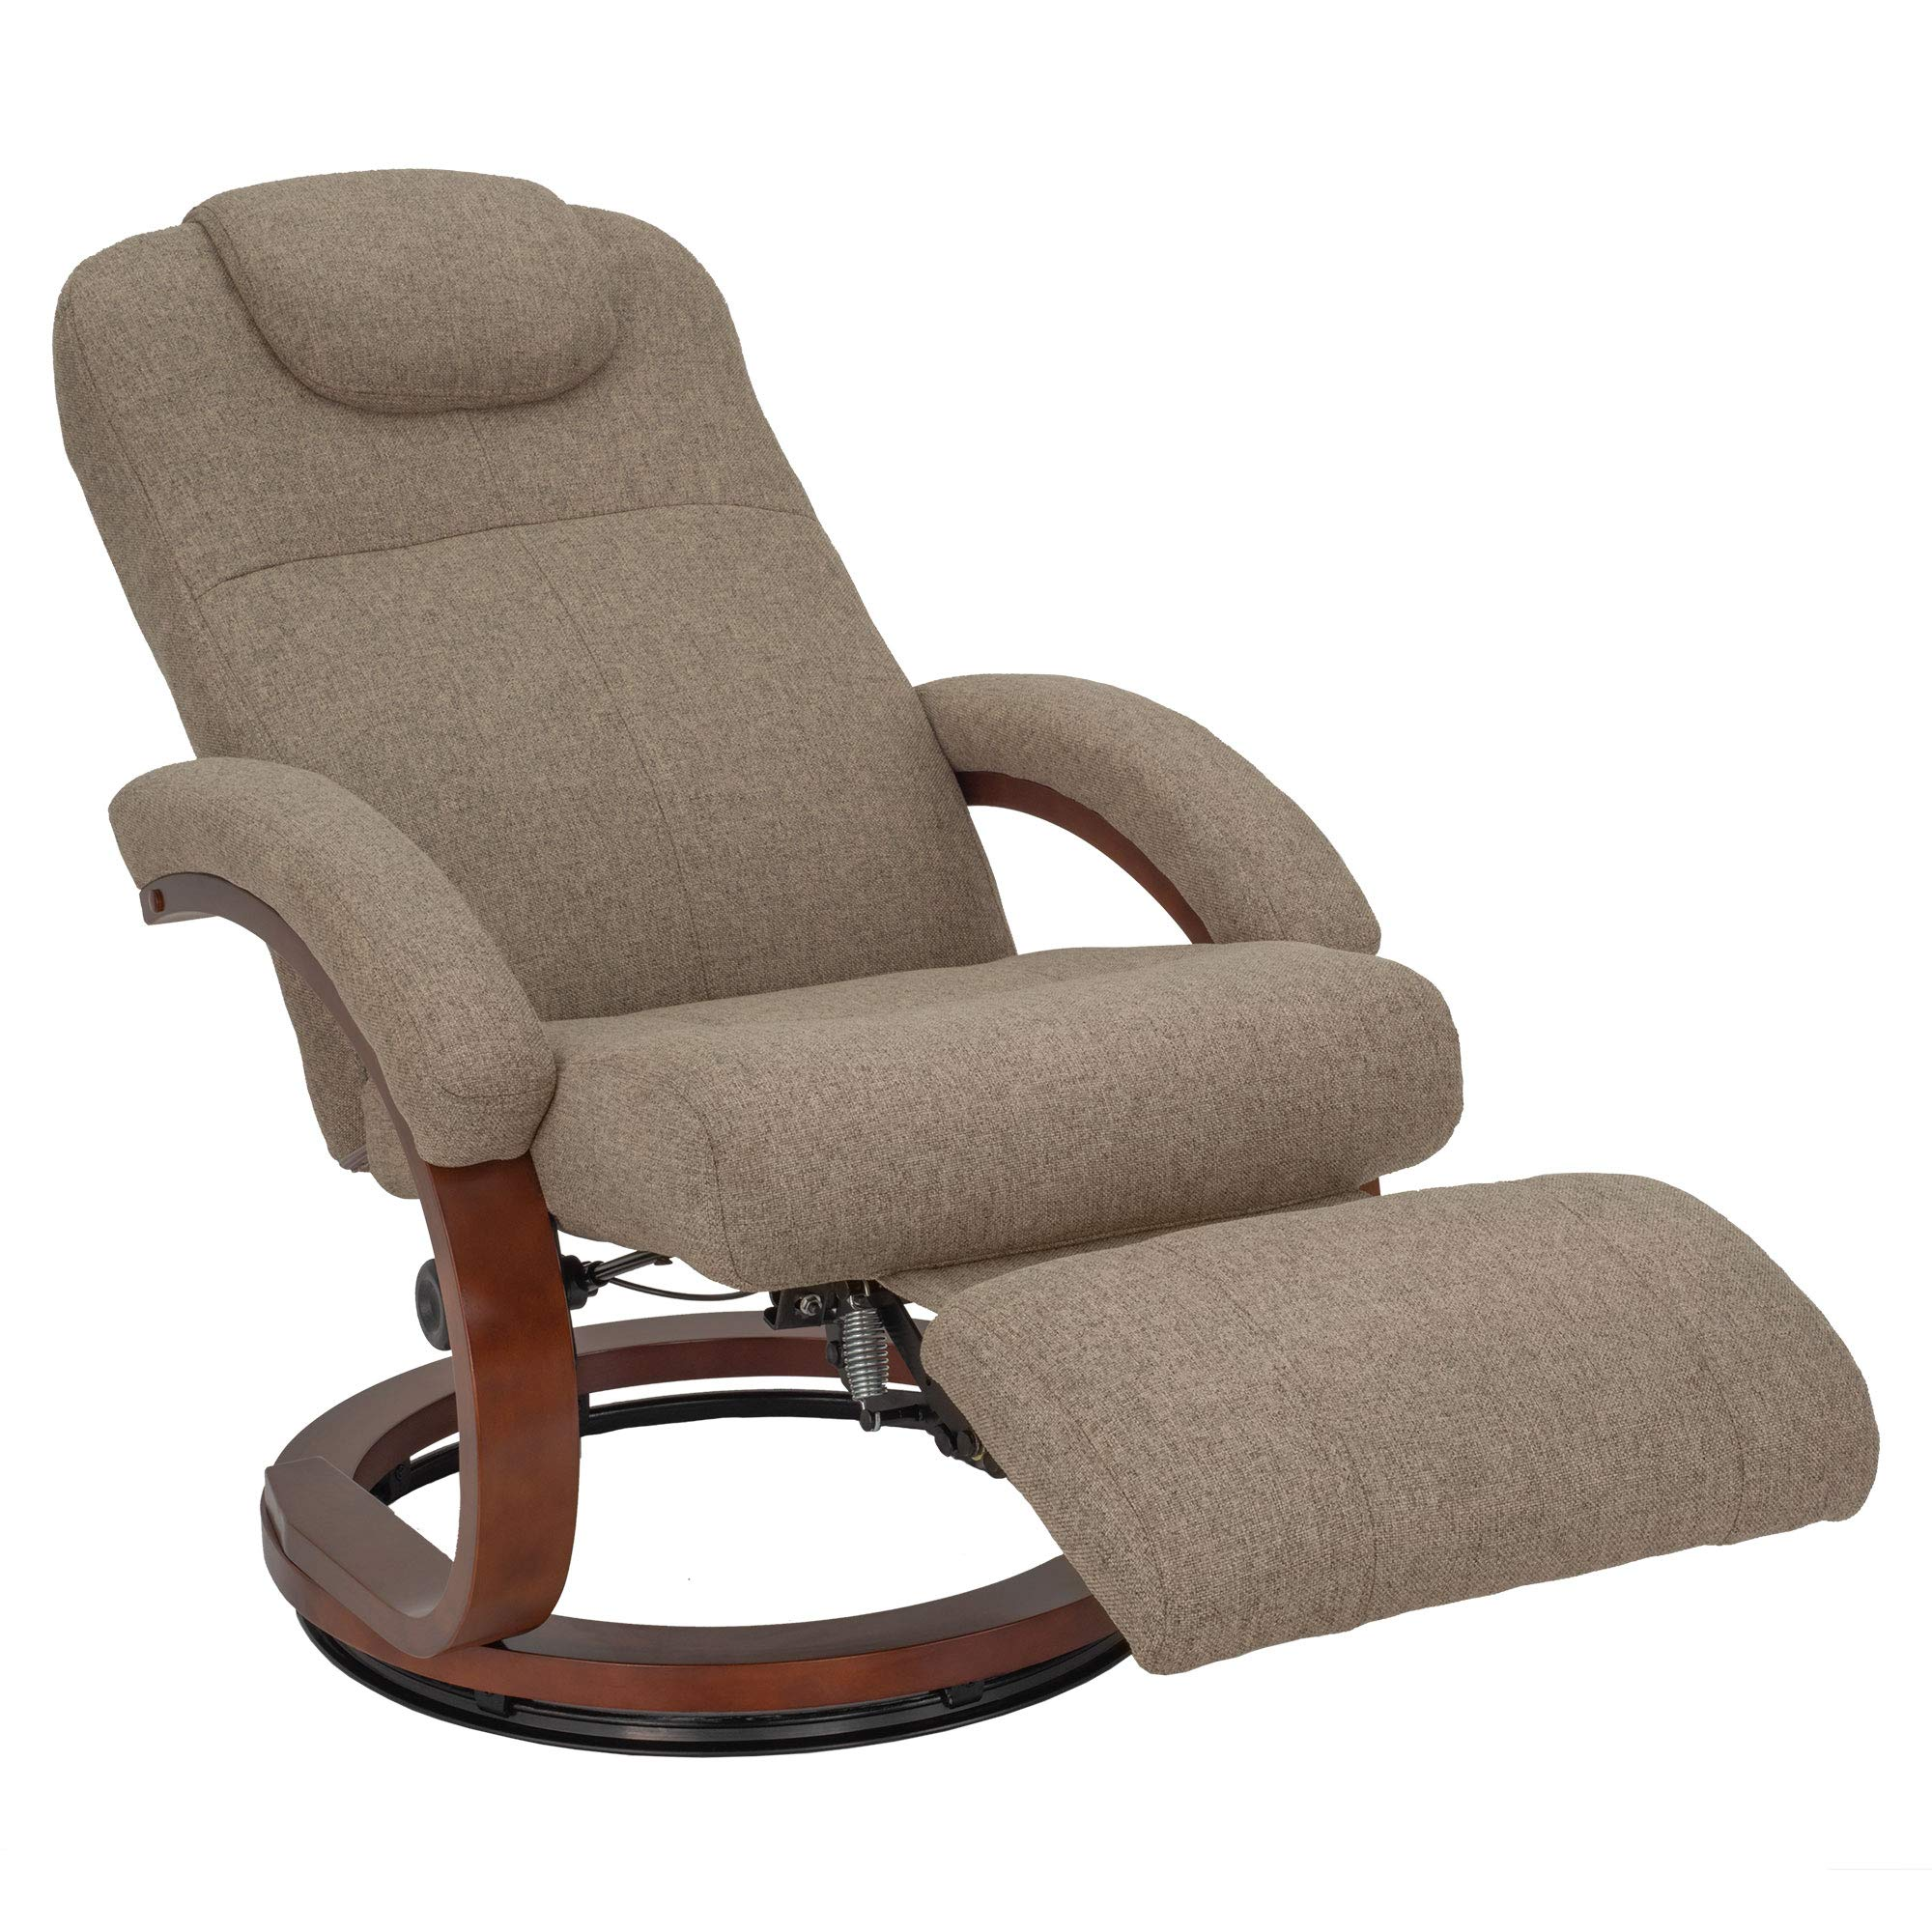 RecPro Charles 28'' RV Euro Chair Recliner | Modern Design | RV Furniture | Cloth (Oatmeal, 1 Chair) by RecPro